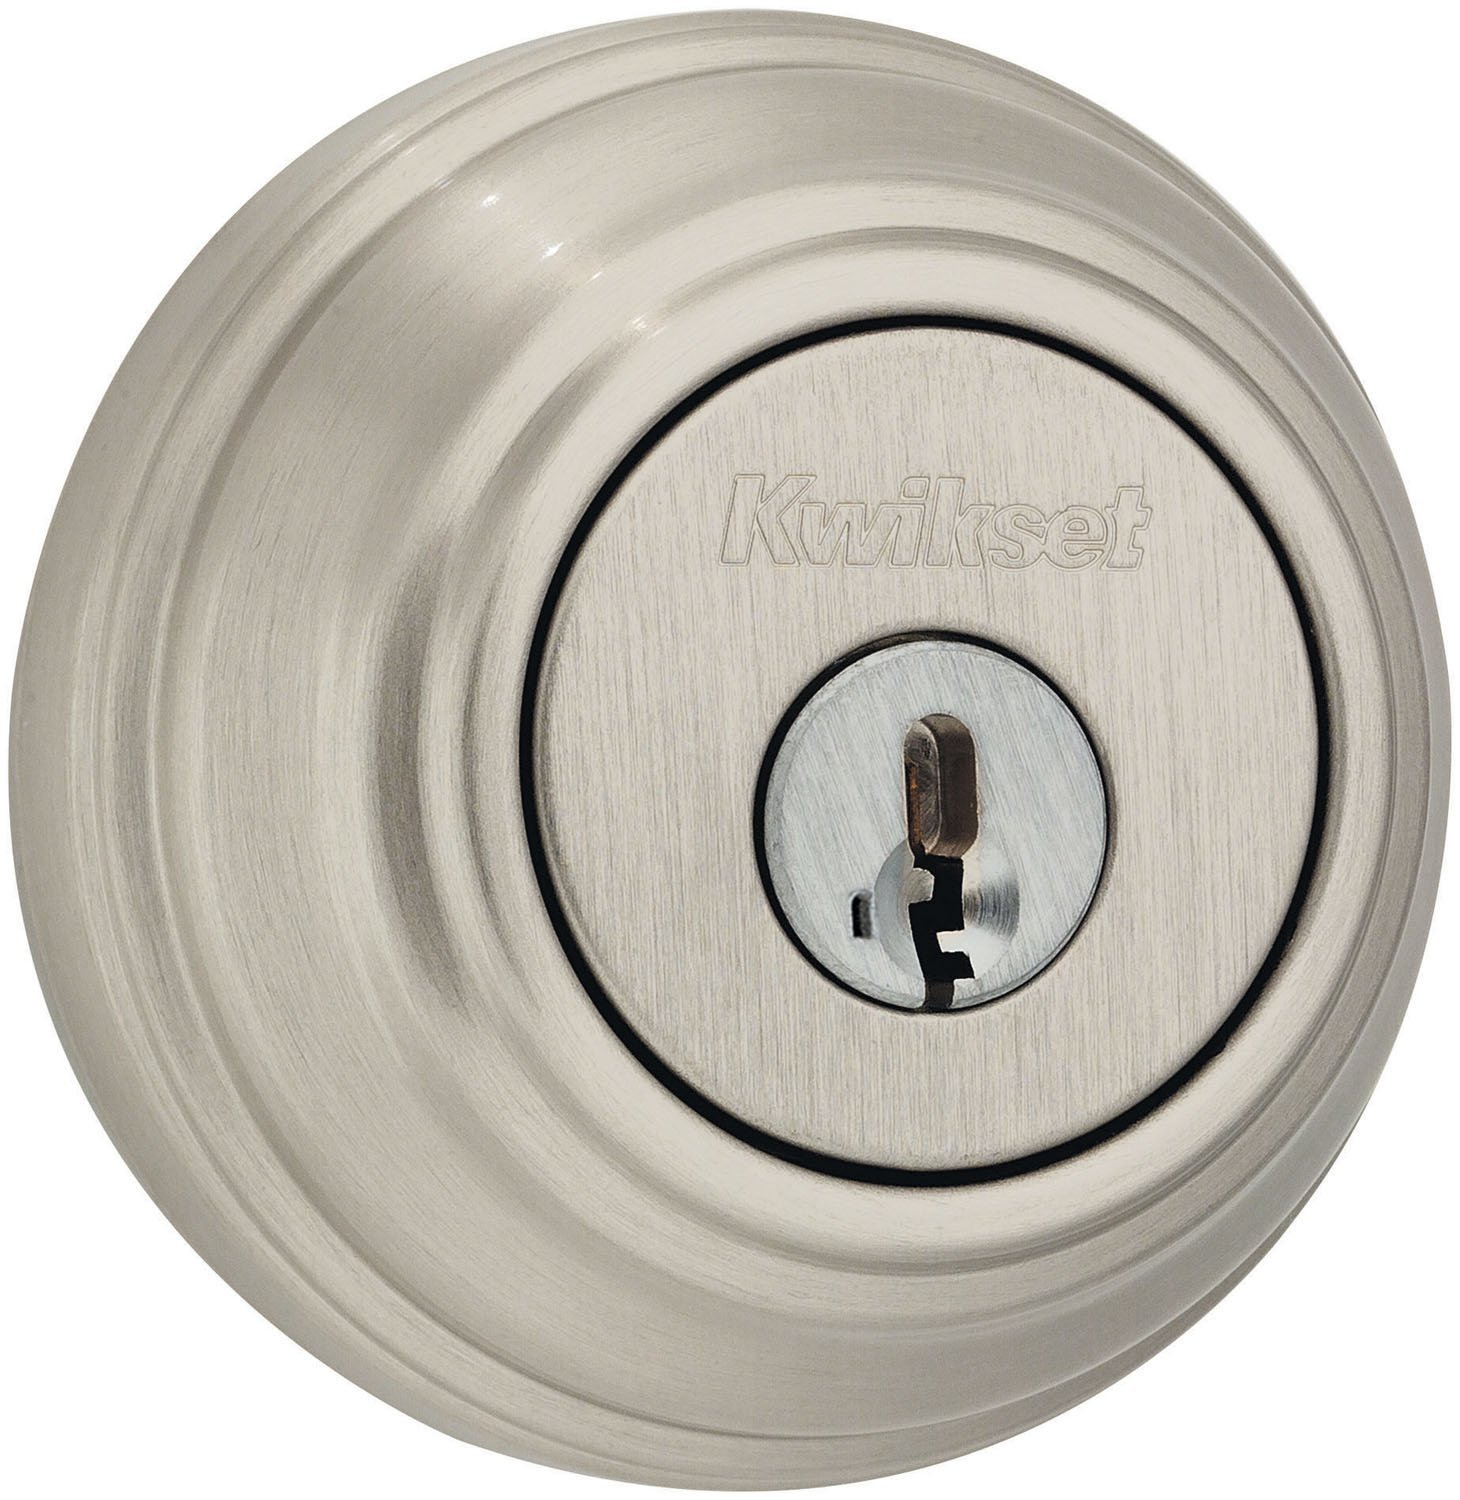 KW 980 Bump Proof Deadbolt